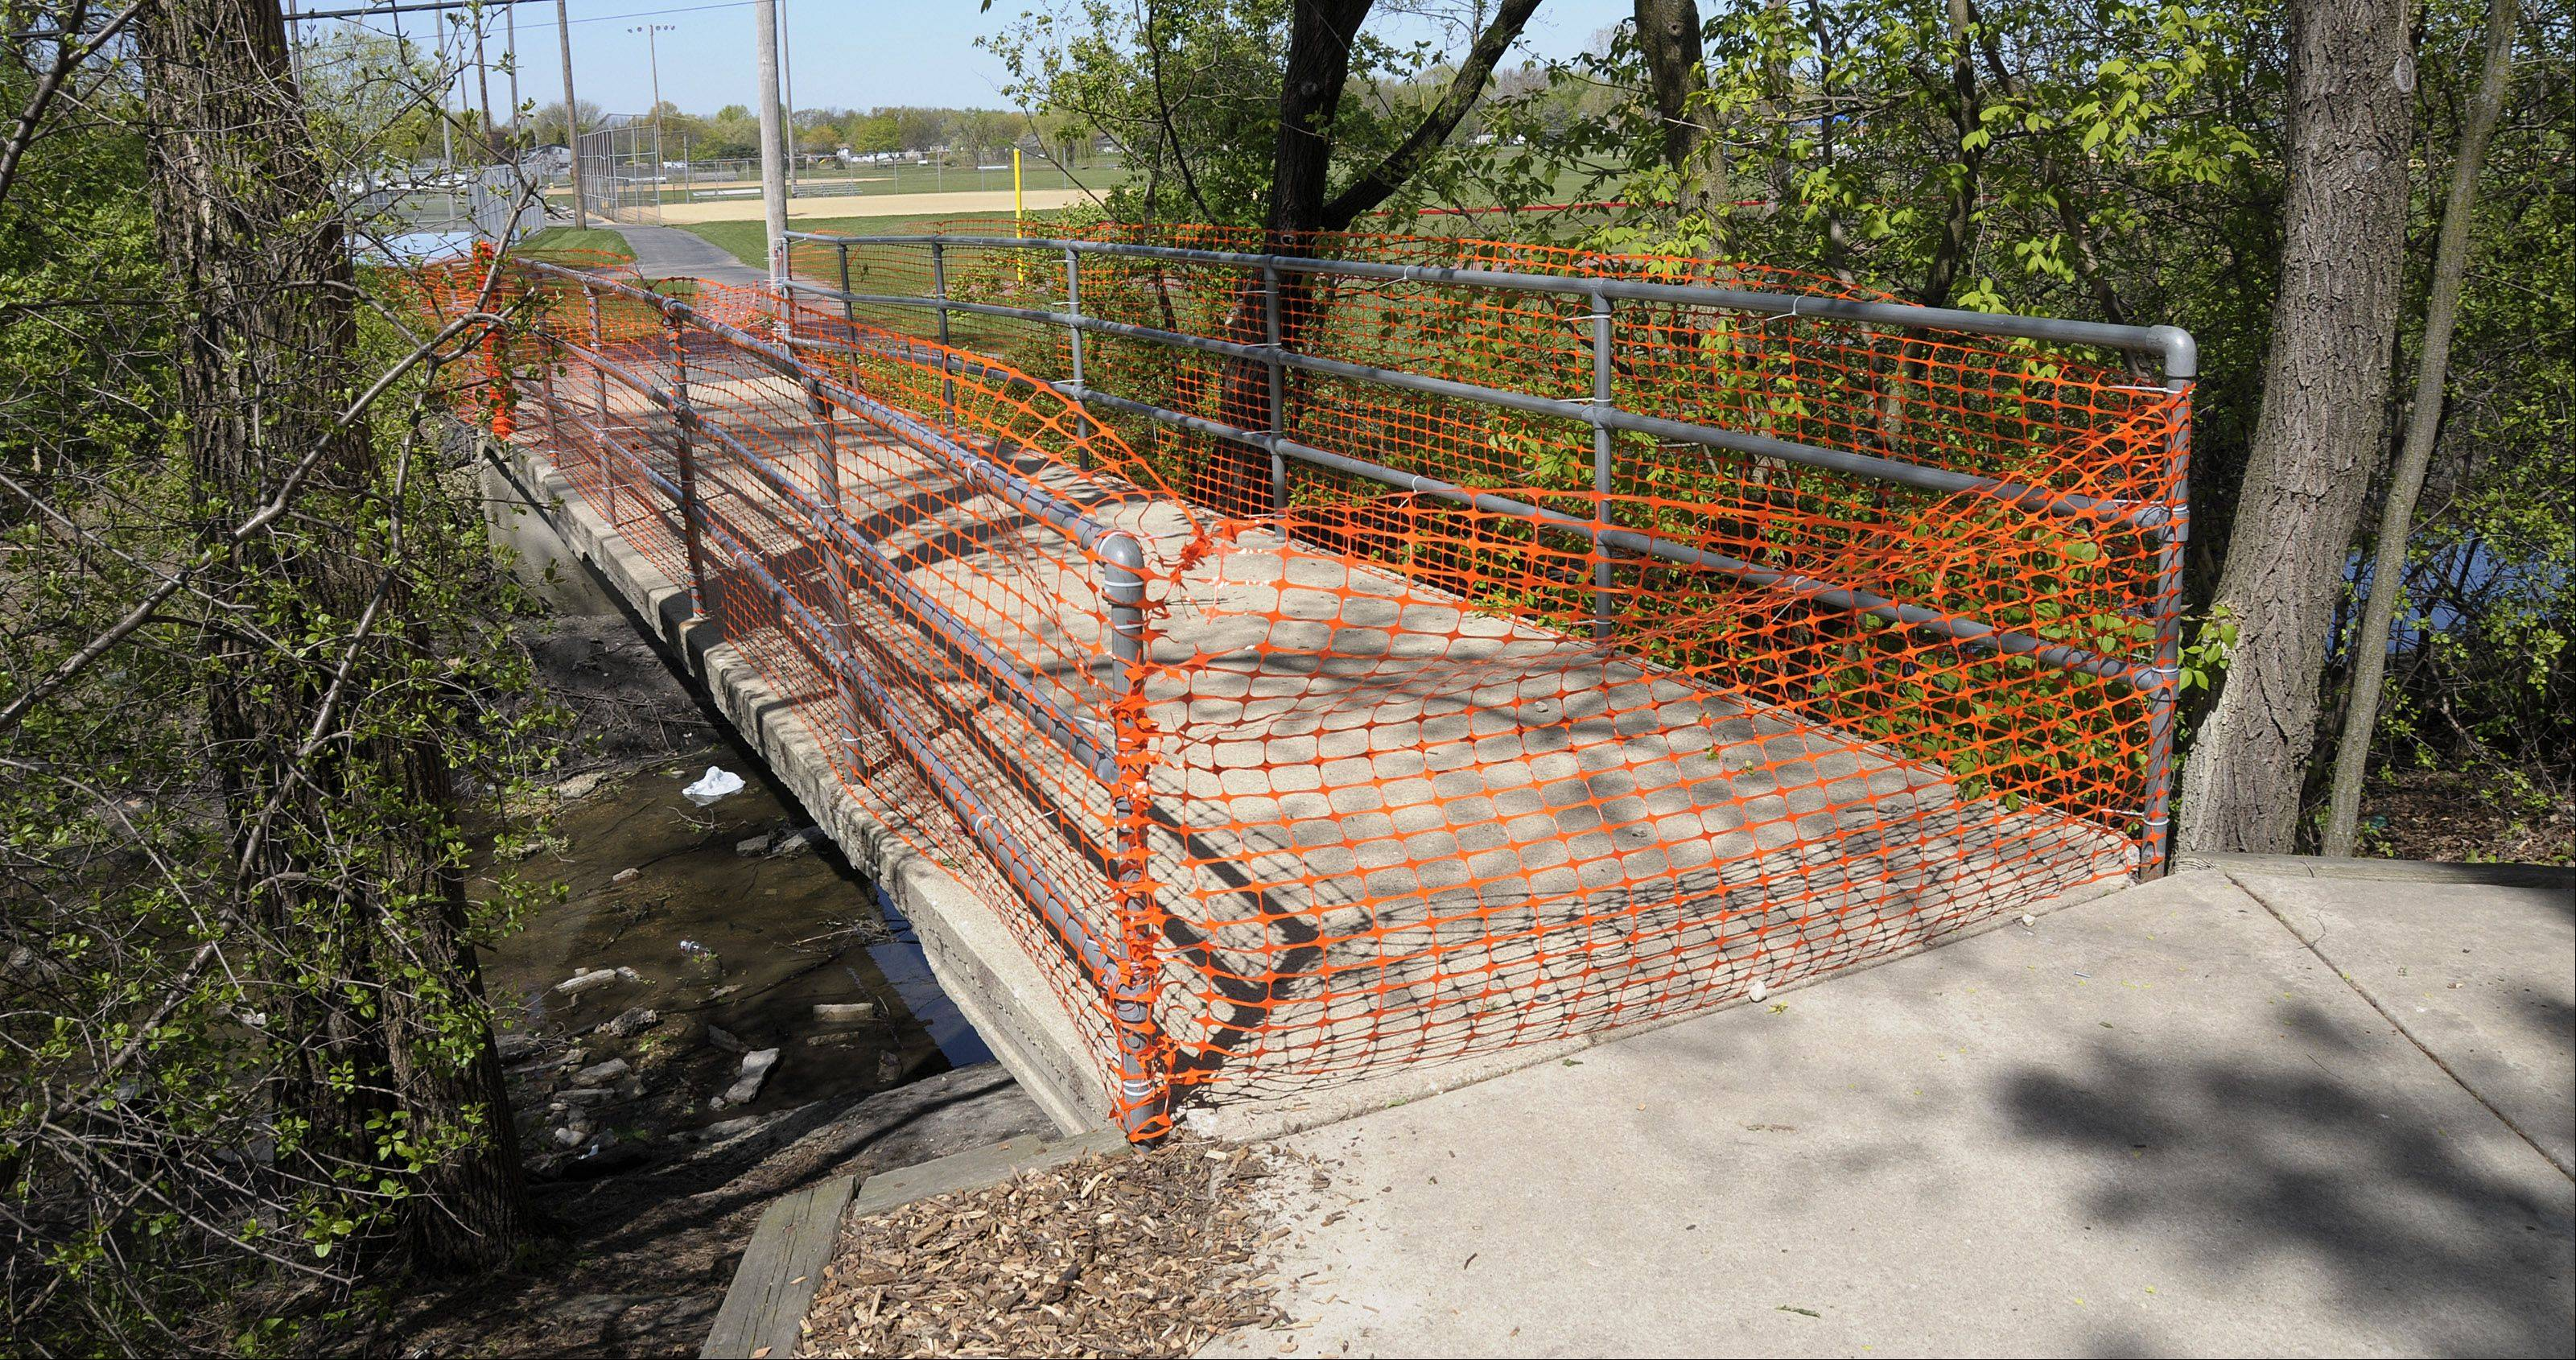 A pedestrian bridge between the Carol Stream Public Library and Armstrong Park has been closed due to safety concerns that arose when a chunk of concrete fell from it last month.